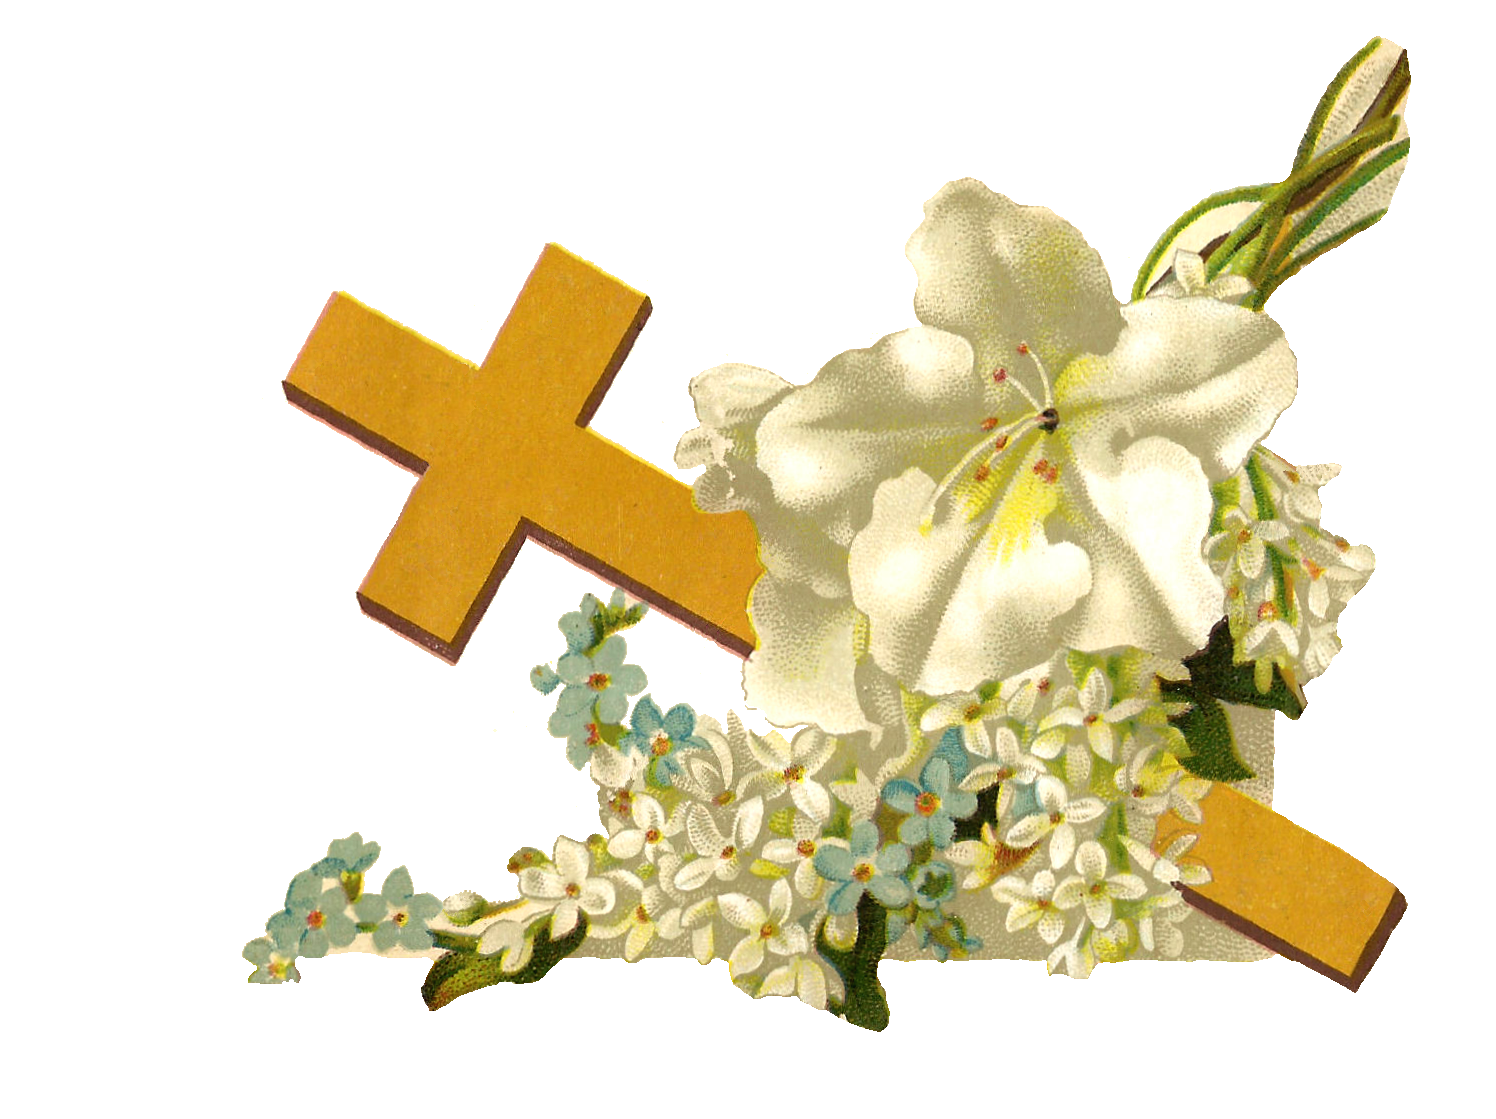 Clipart cross easter picture transparent download Antique Images: Free Religious Clip Art: Gold Cross and White ... picture transparent download